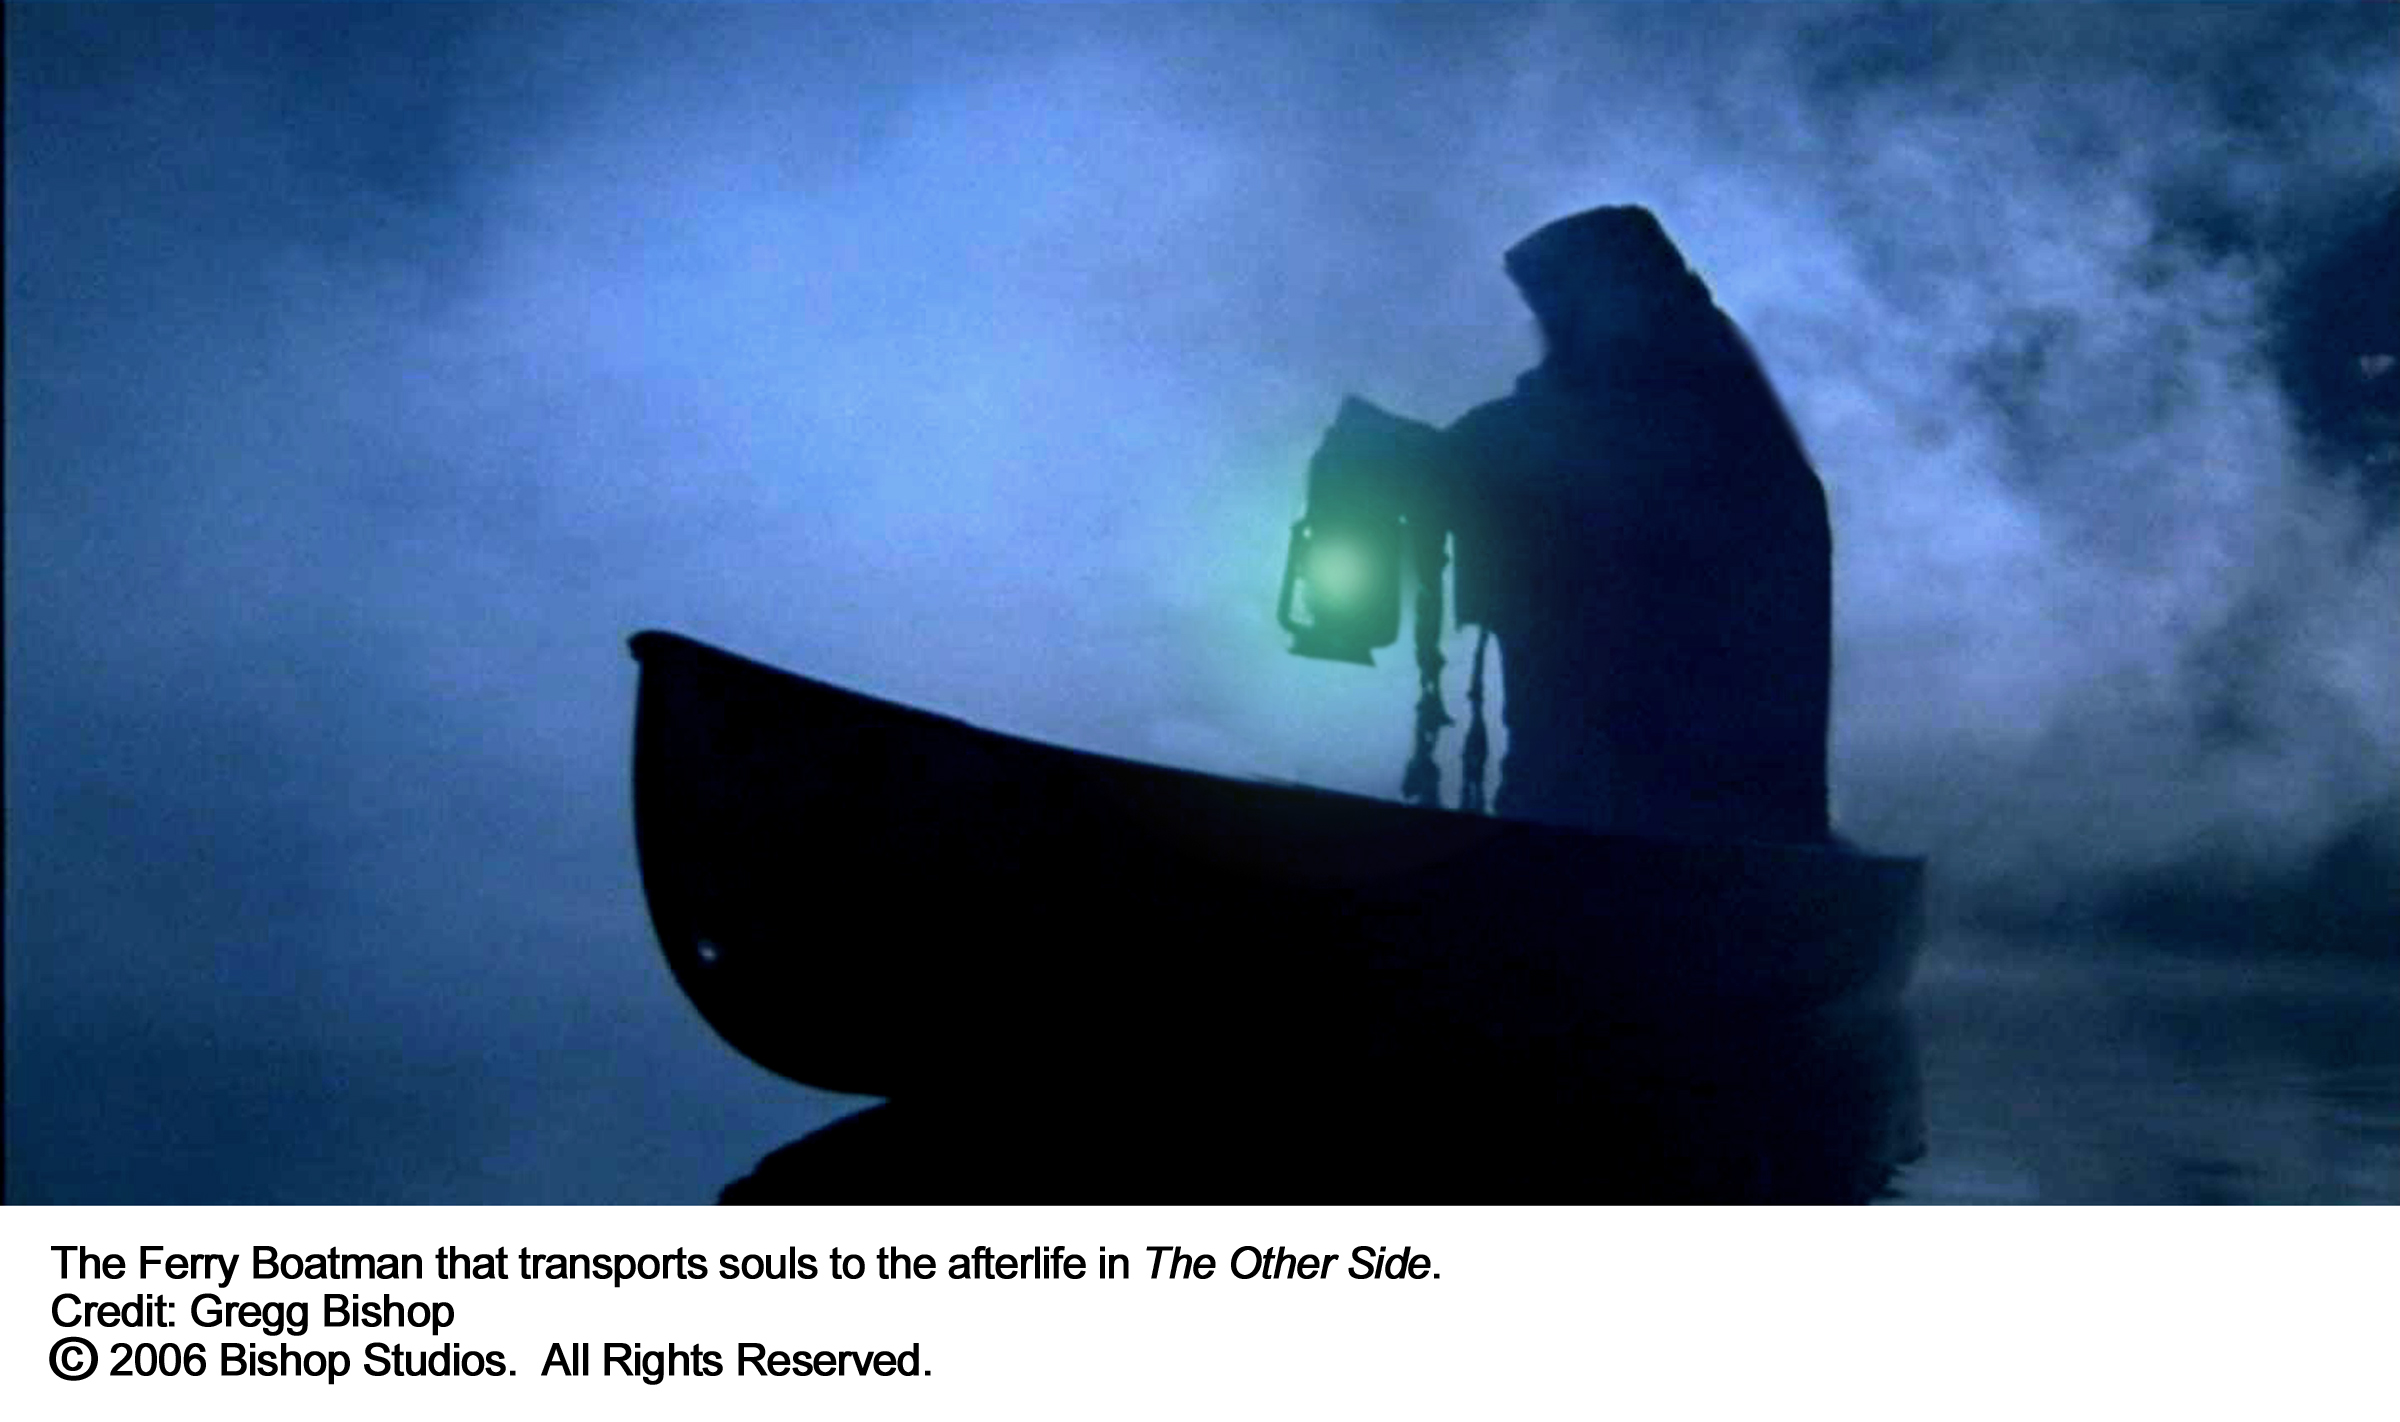 The Ferry Boatman who transports souls to the Afterlife.